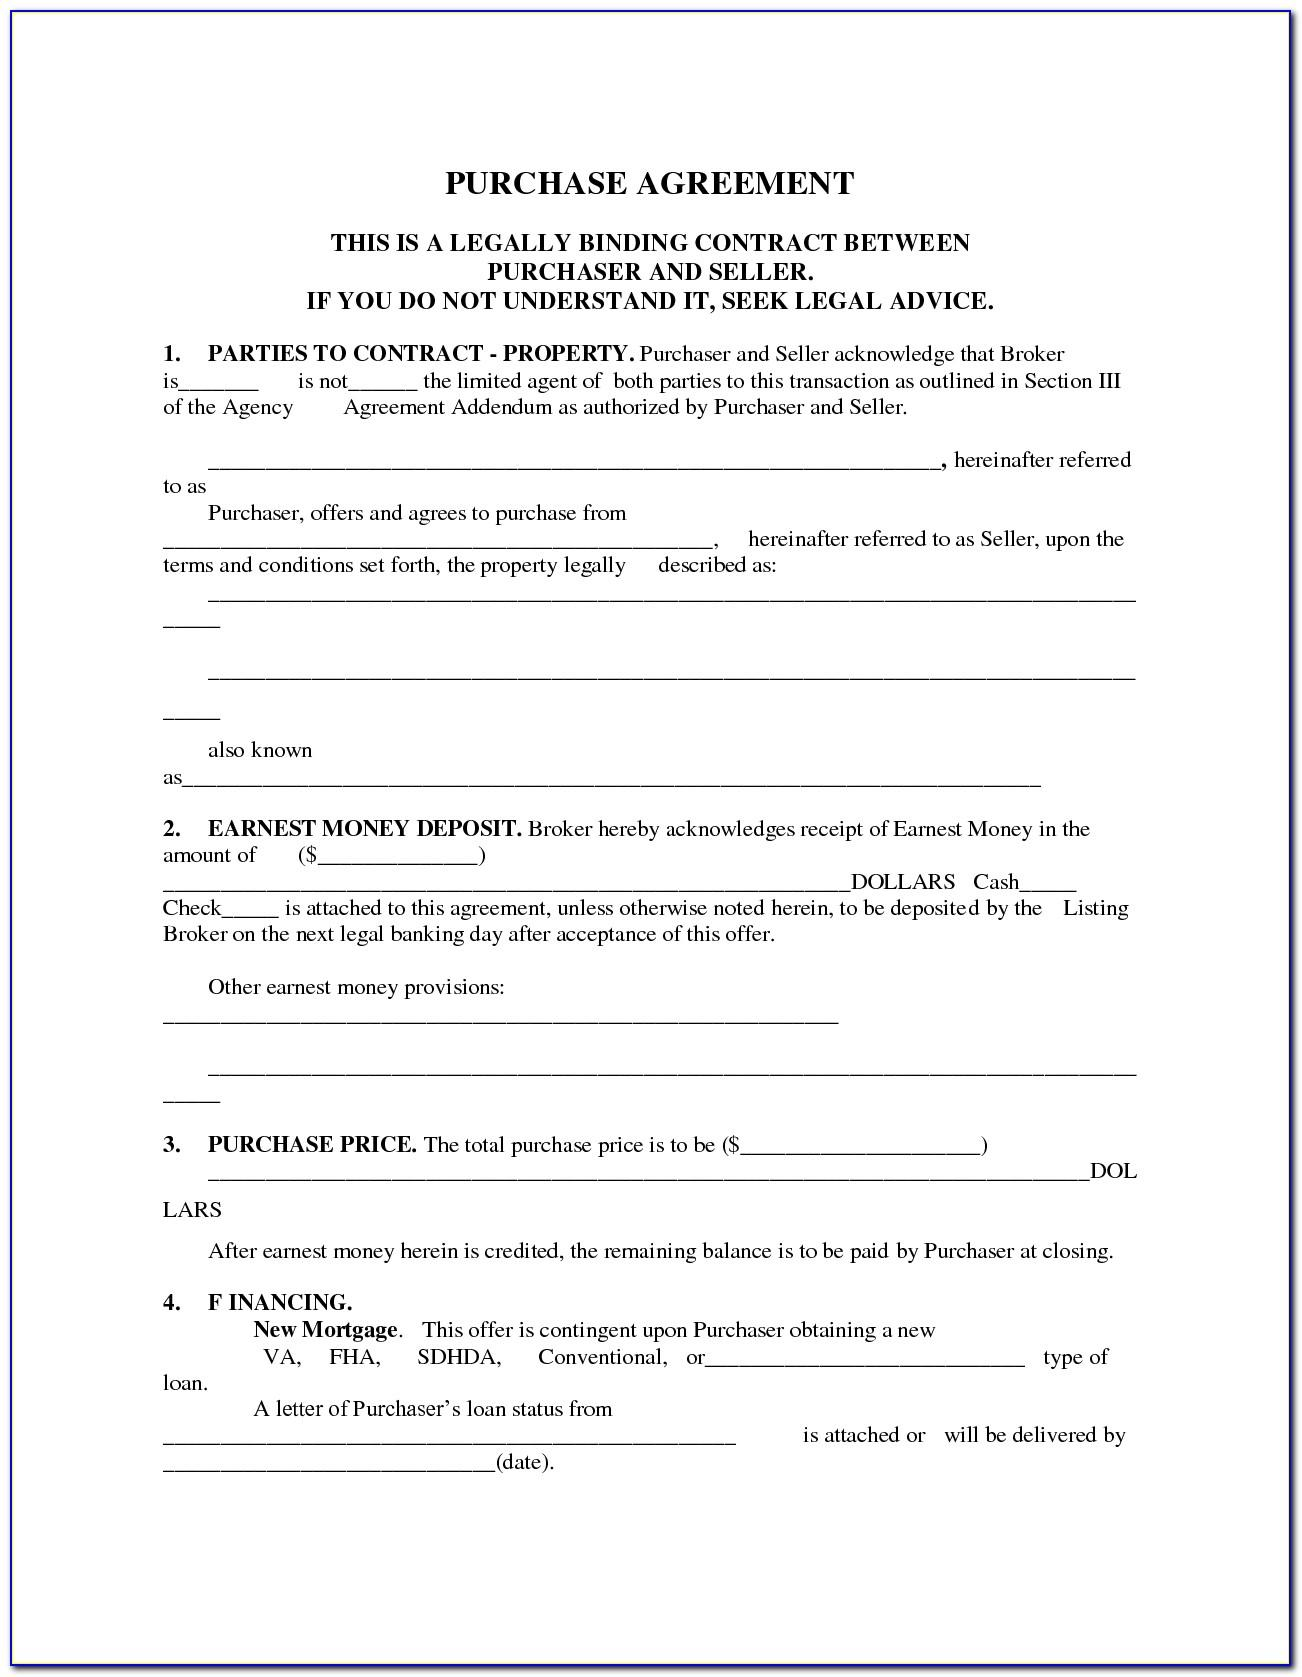 Share Purchase Agreement Template Free